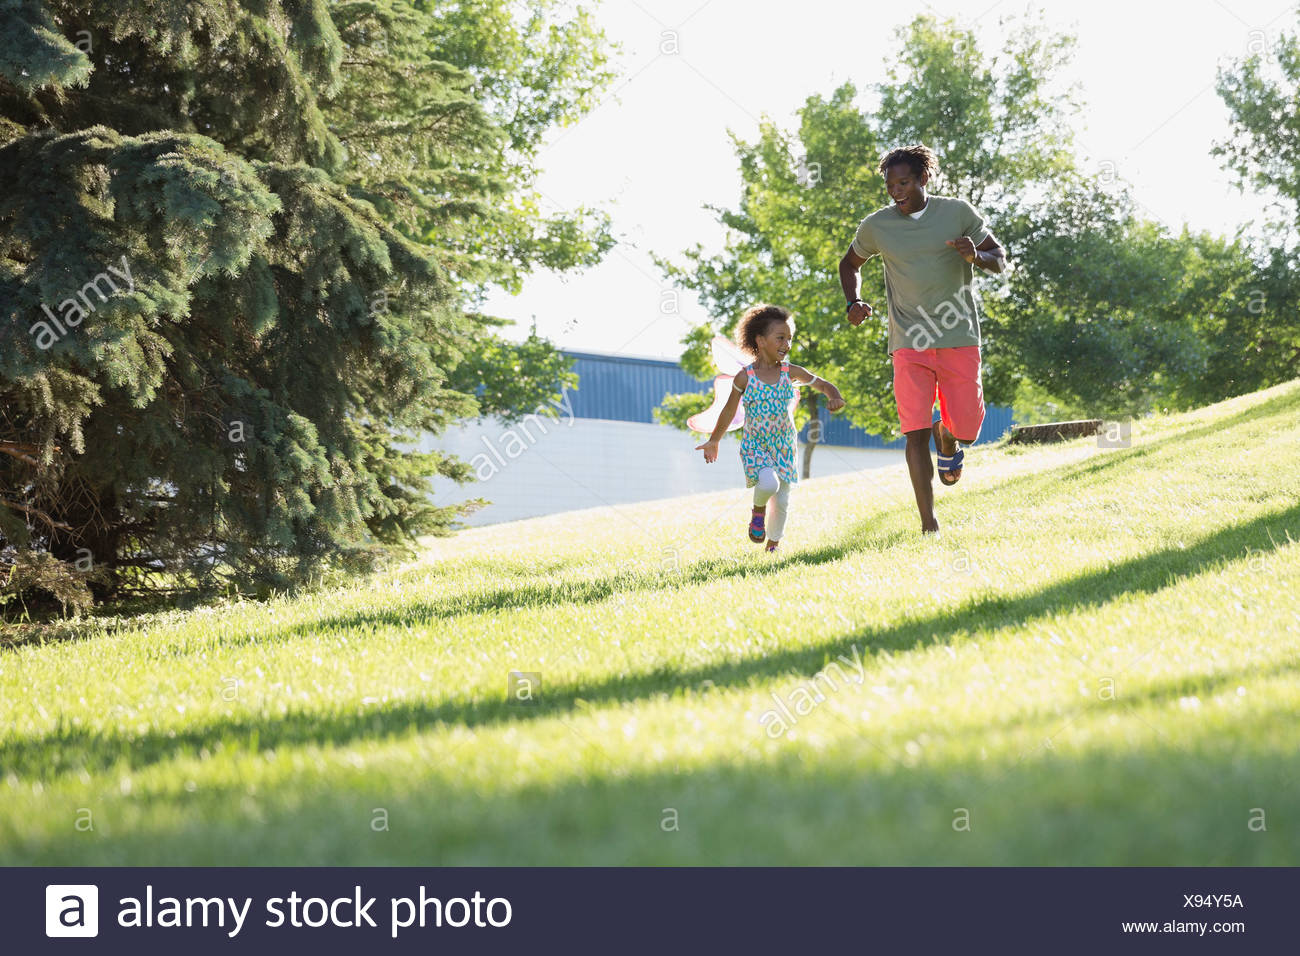 Cheerful father and daughter running in park Stock Photo